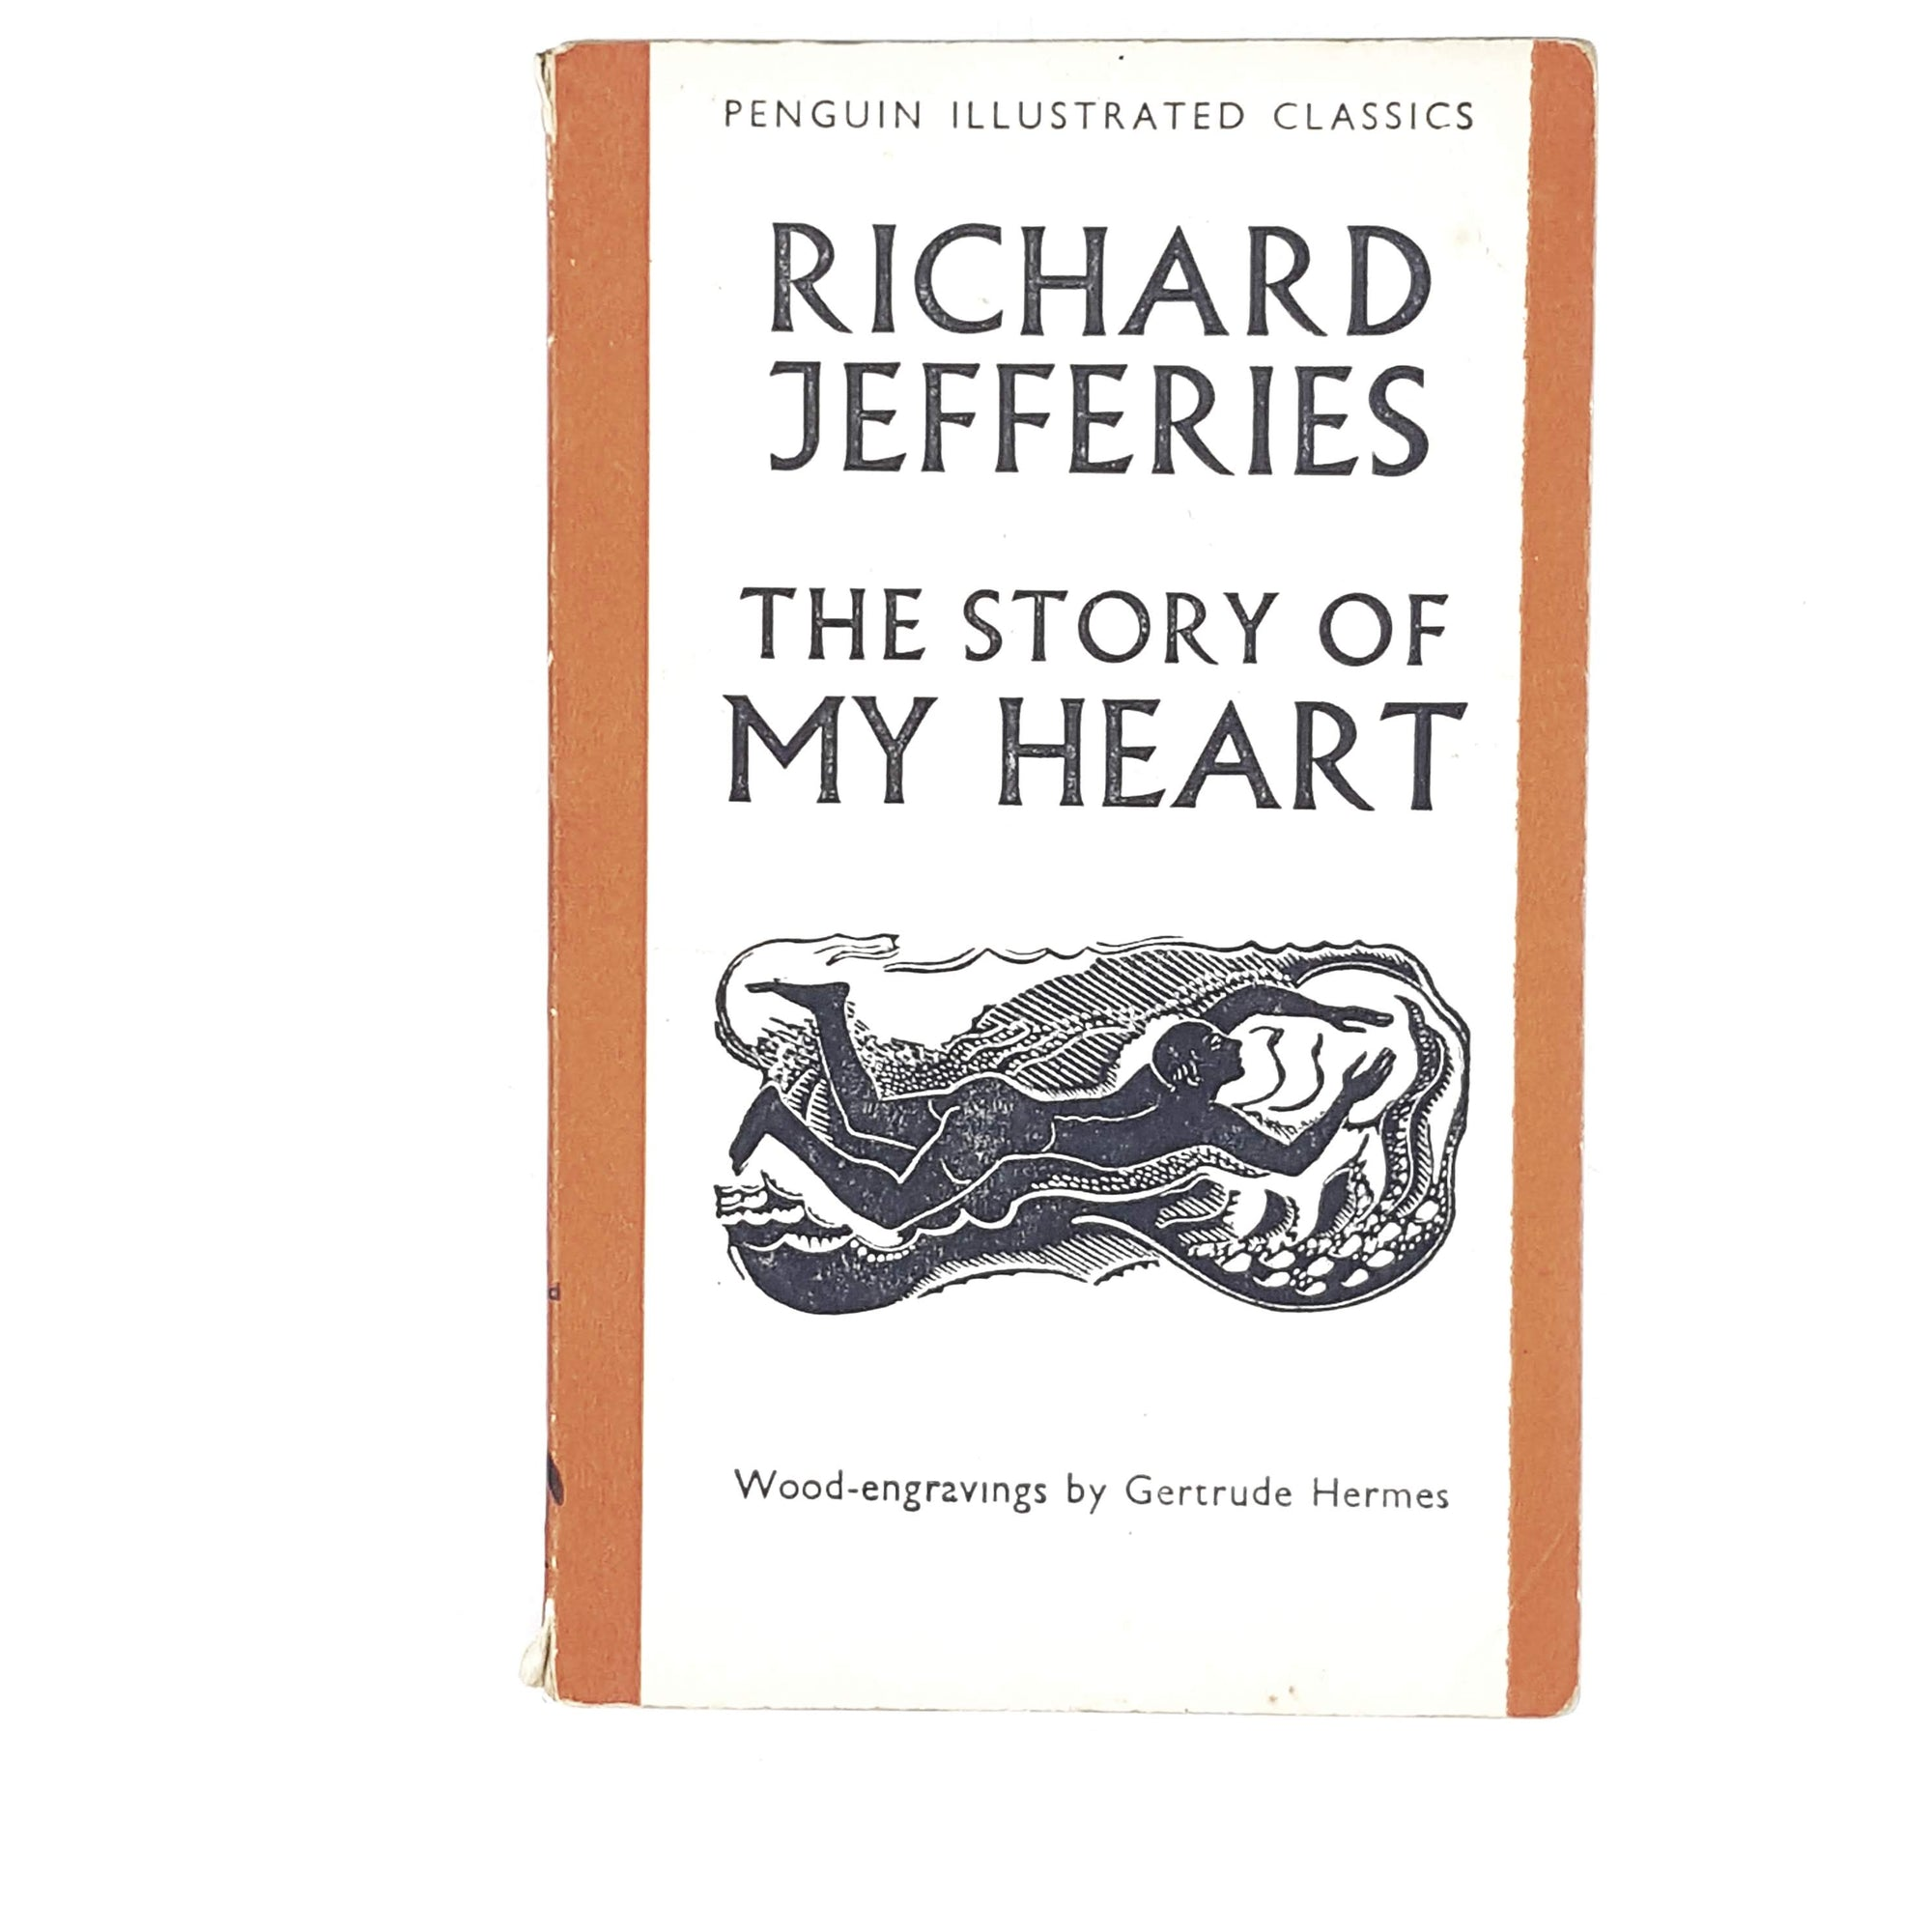 Vintage Penguin Illustrated The Story of My Heart by Richard Jeffries 1938